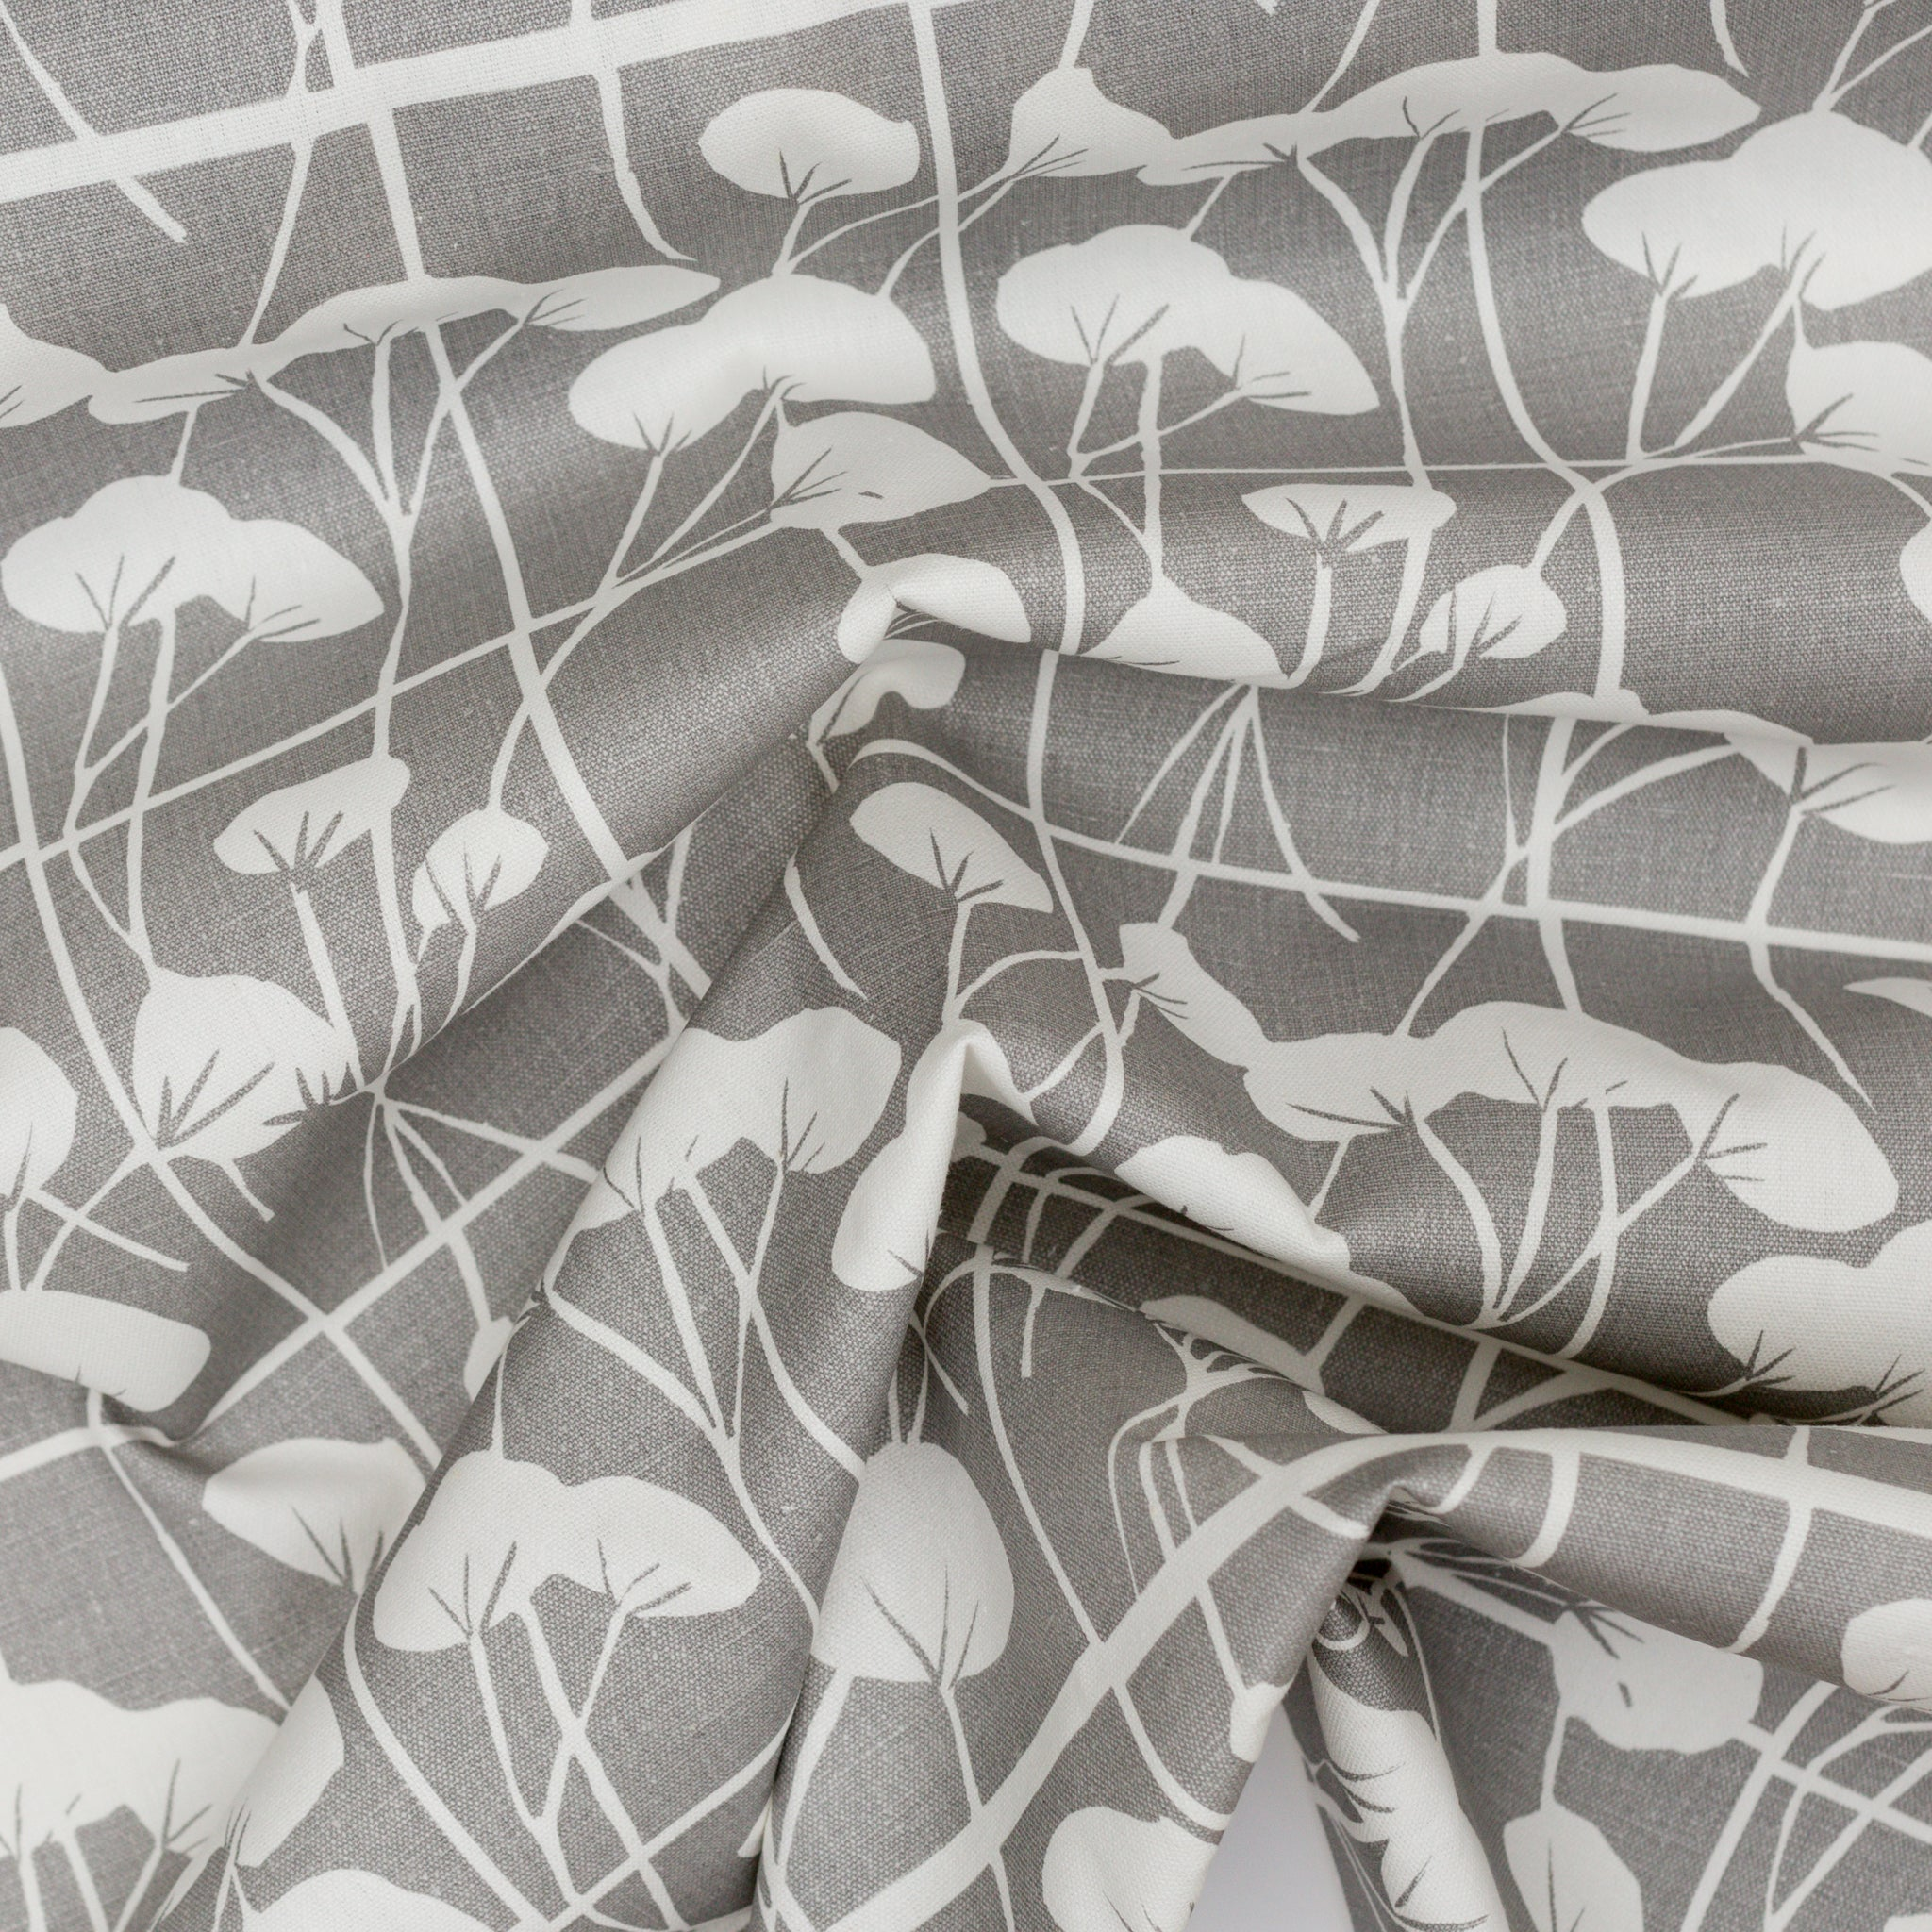 Screen printed fabric with cotton plants in pebble